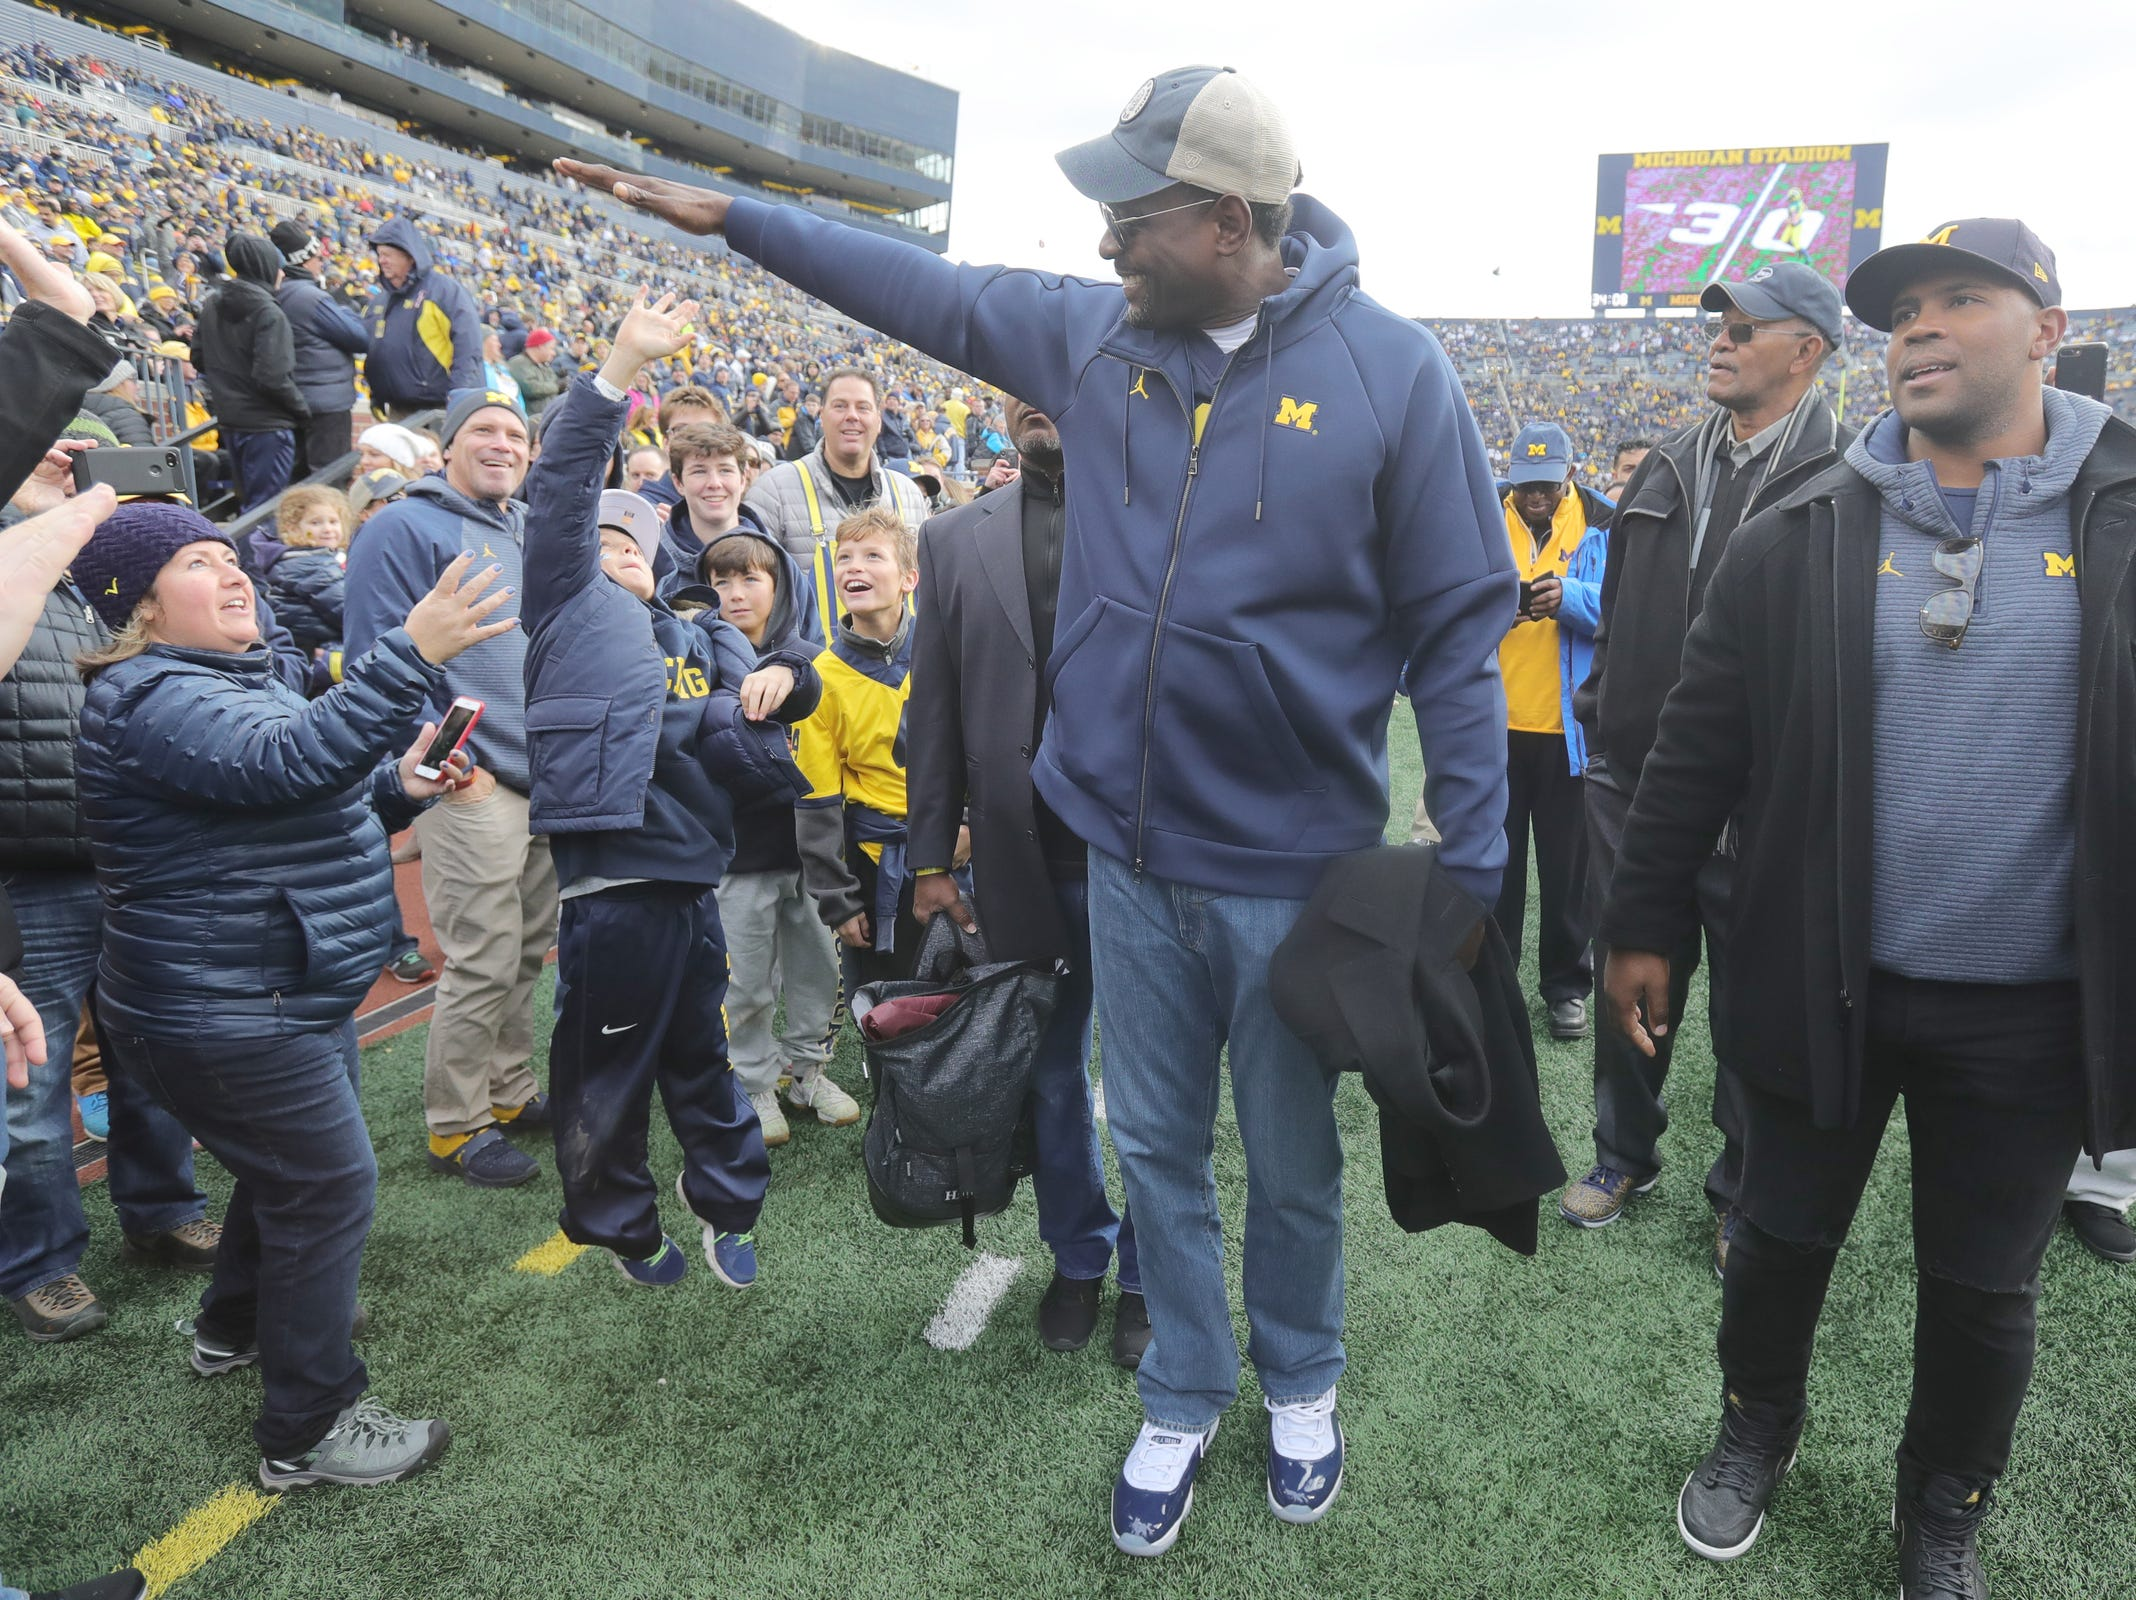 Former Michigan basketball player Chris Webber gives out high fives with fans on the football field prior to the start of the Michigan and Penn State game on Saturday, Nov. 3,2018, at Michigan Stadium.